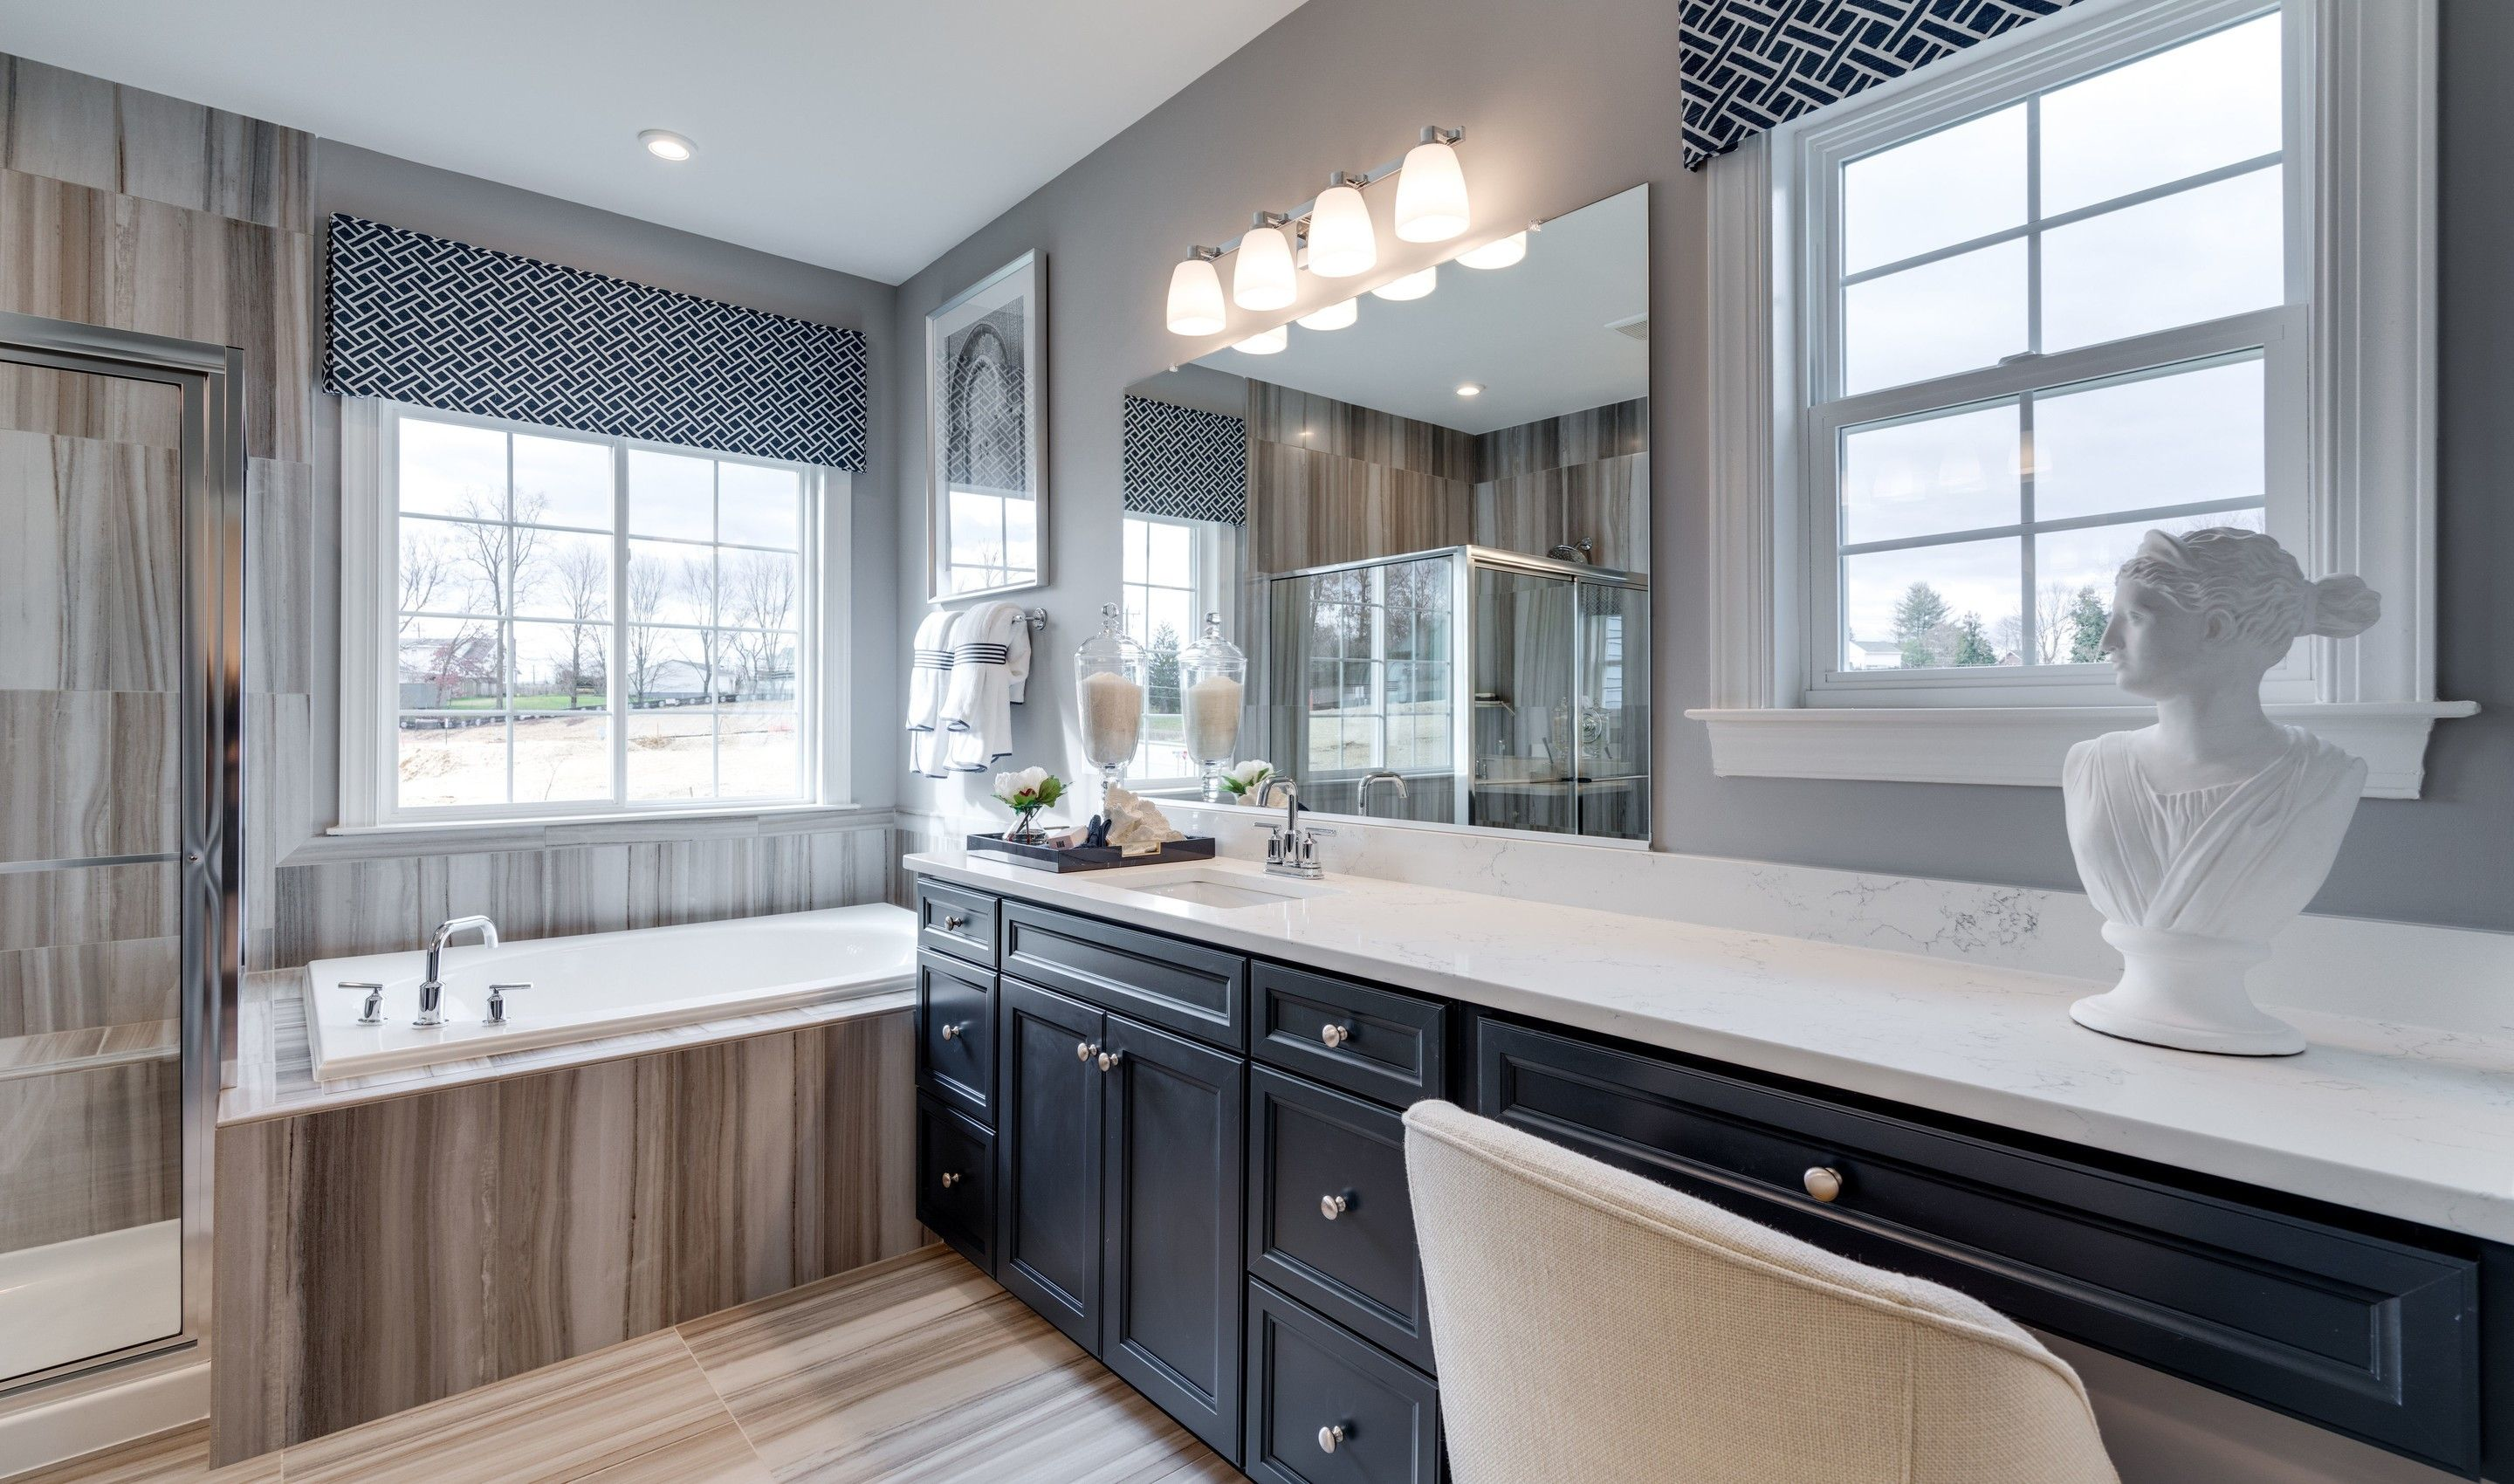 Bathroom featured in the Memphis II By K. Hovnanian® Homes in Washington, VA